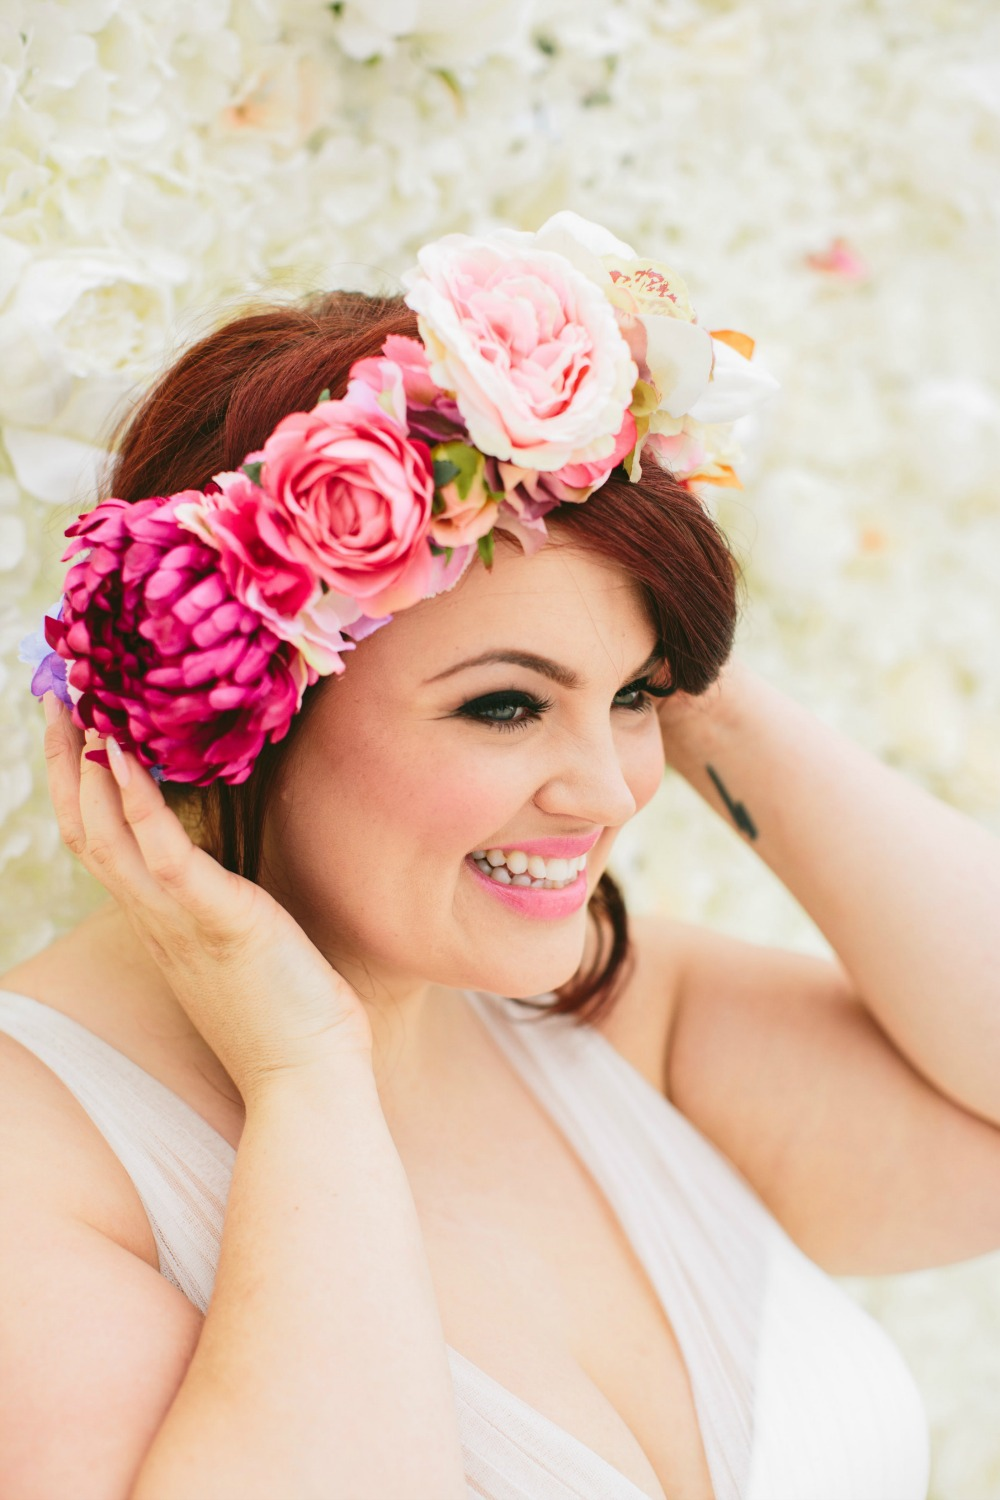 Plus size bride wedding dress flower crown.jpg